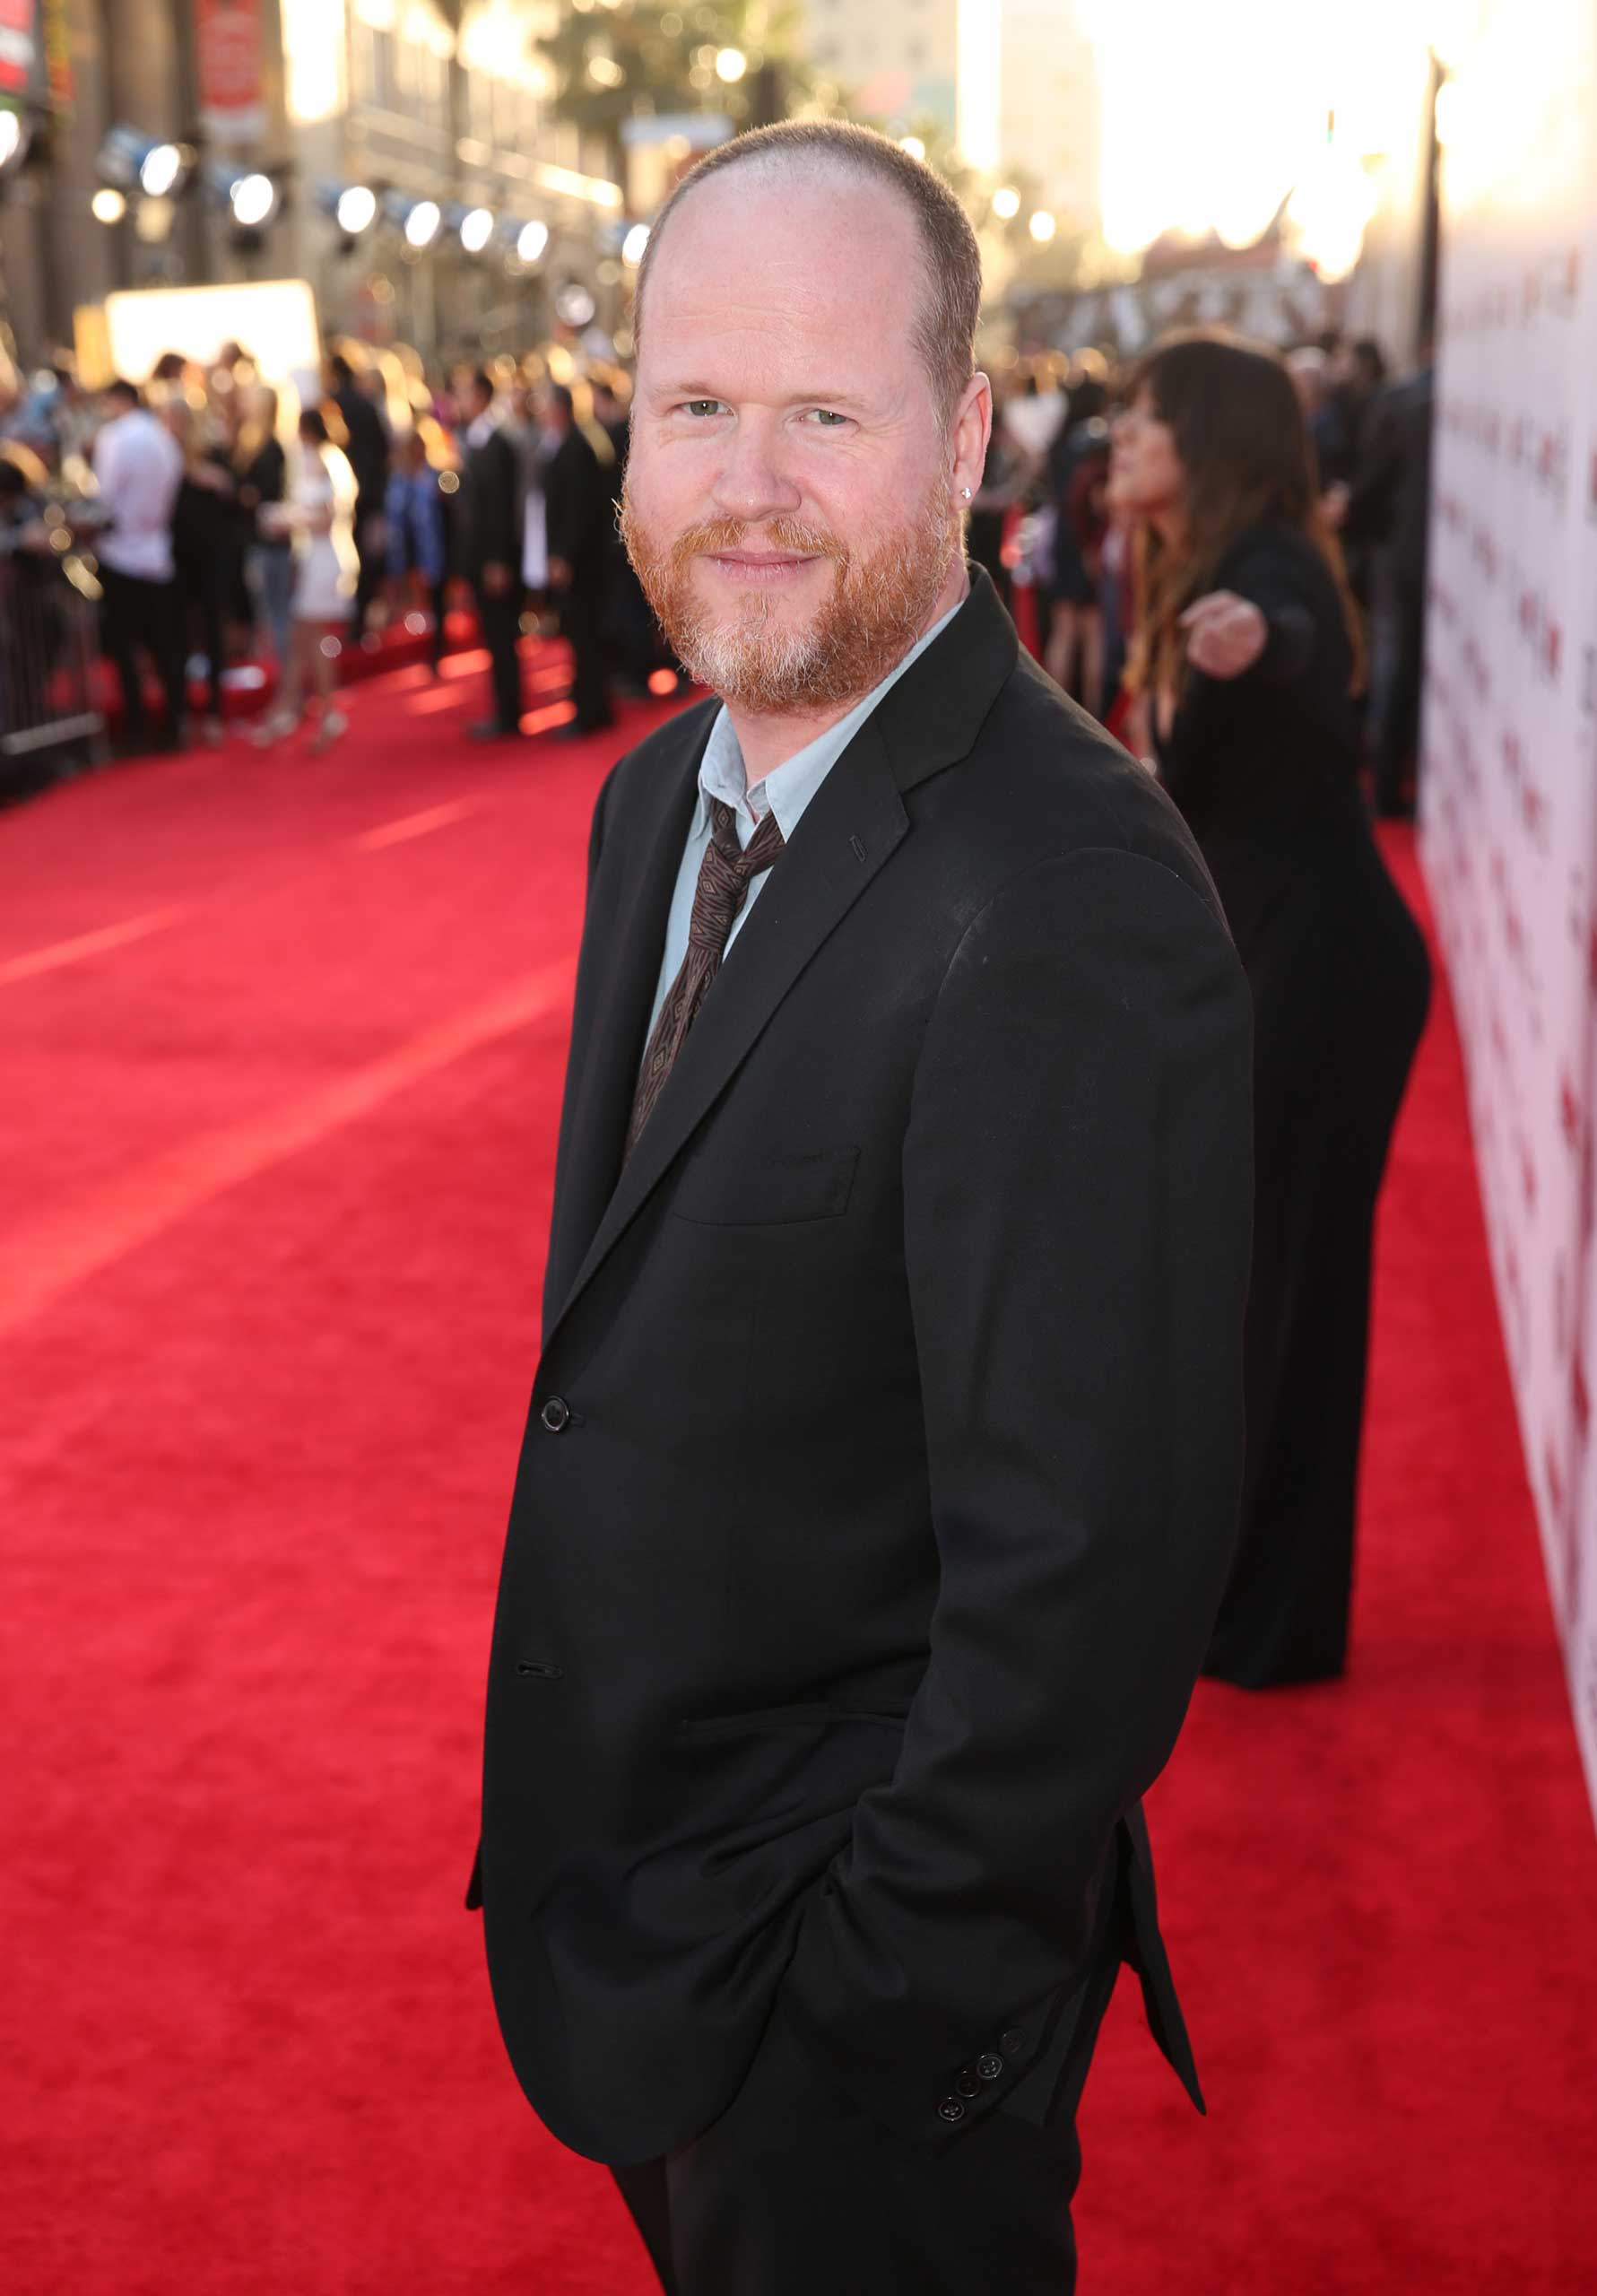 Joss Whedon arrives at the Los Angeles premiere of  Avengers: Age Of Ultron  at the Dolby Theatre on April 13, 2015.